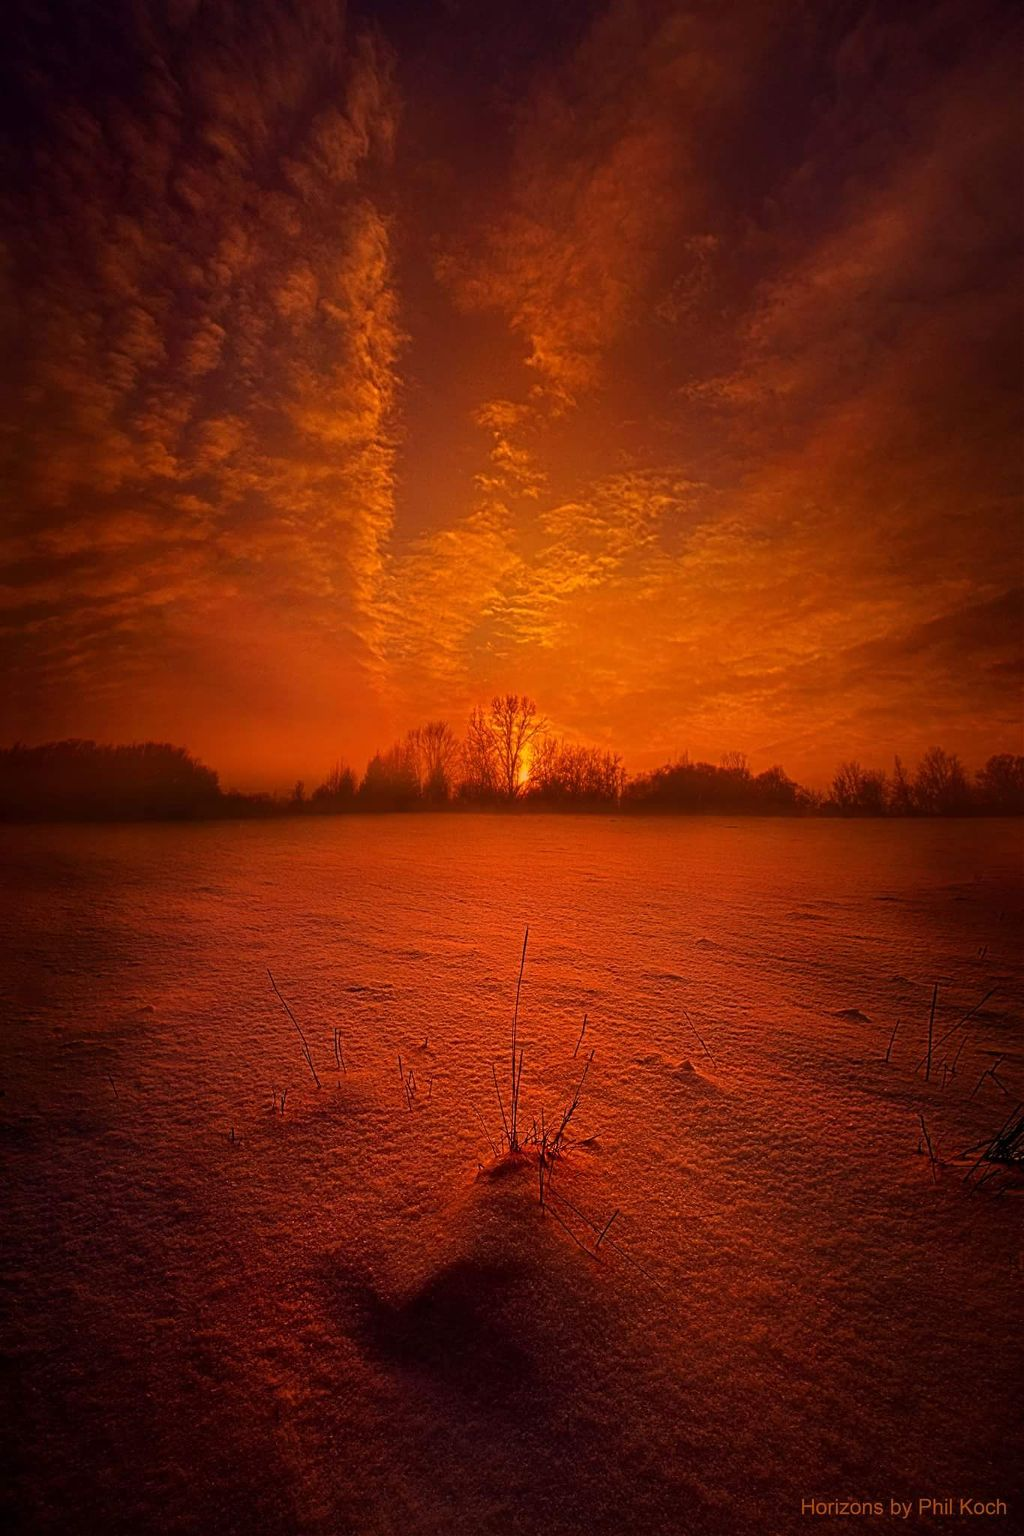 """"""" World Without End """" - Horizons by Phil Koch.  #winter #snow #weather #landscape #country #mood #peace #rural #light #sunrise #seasons #travel #nature #photography #colorful #emotions #love #hike"""